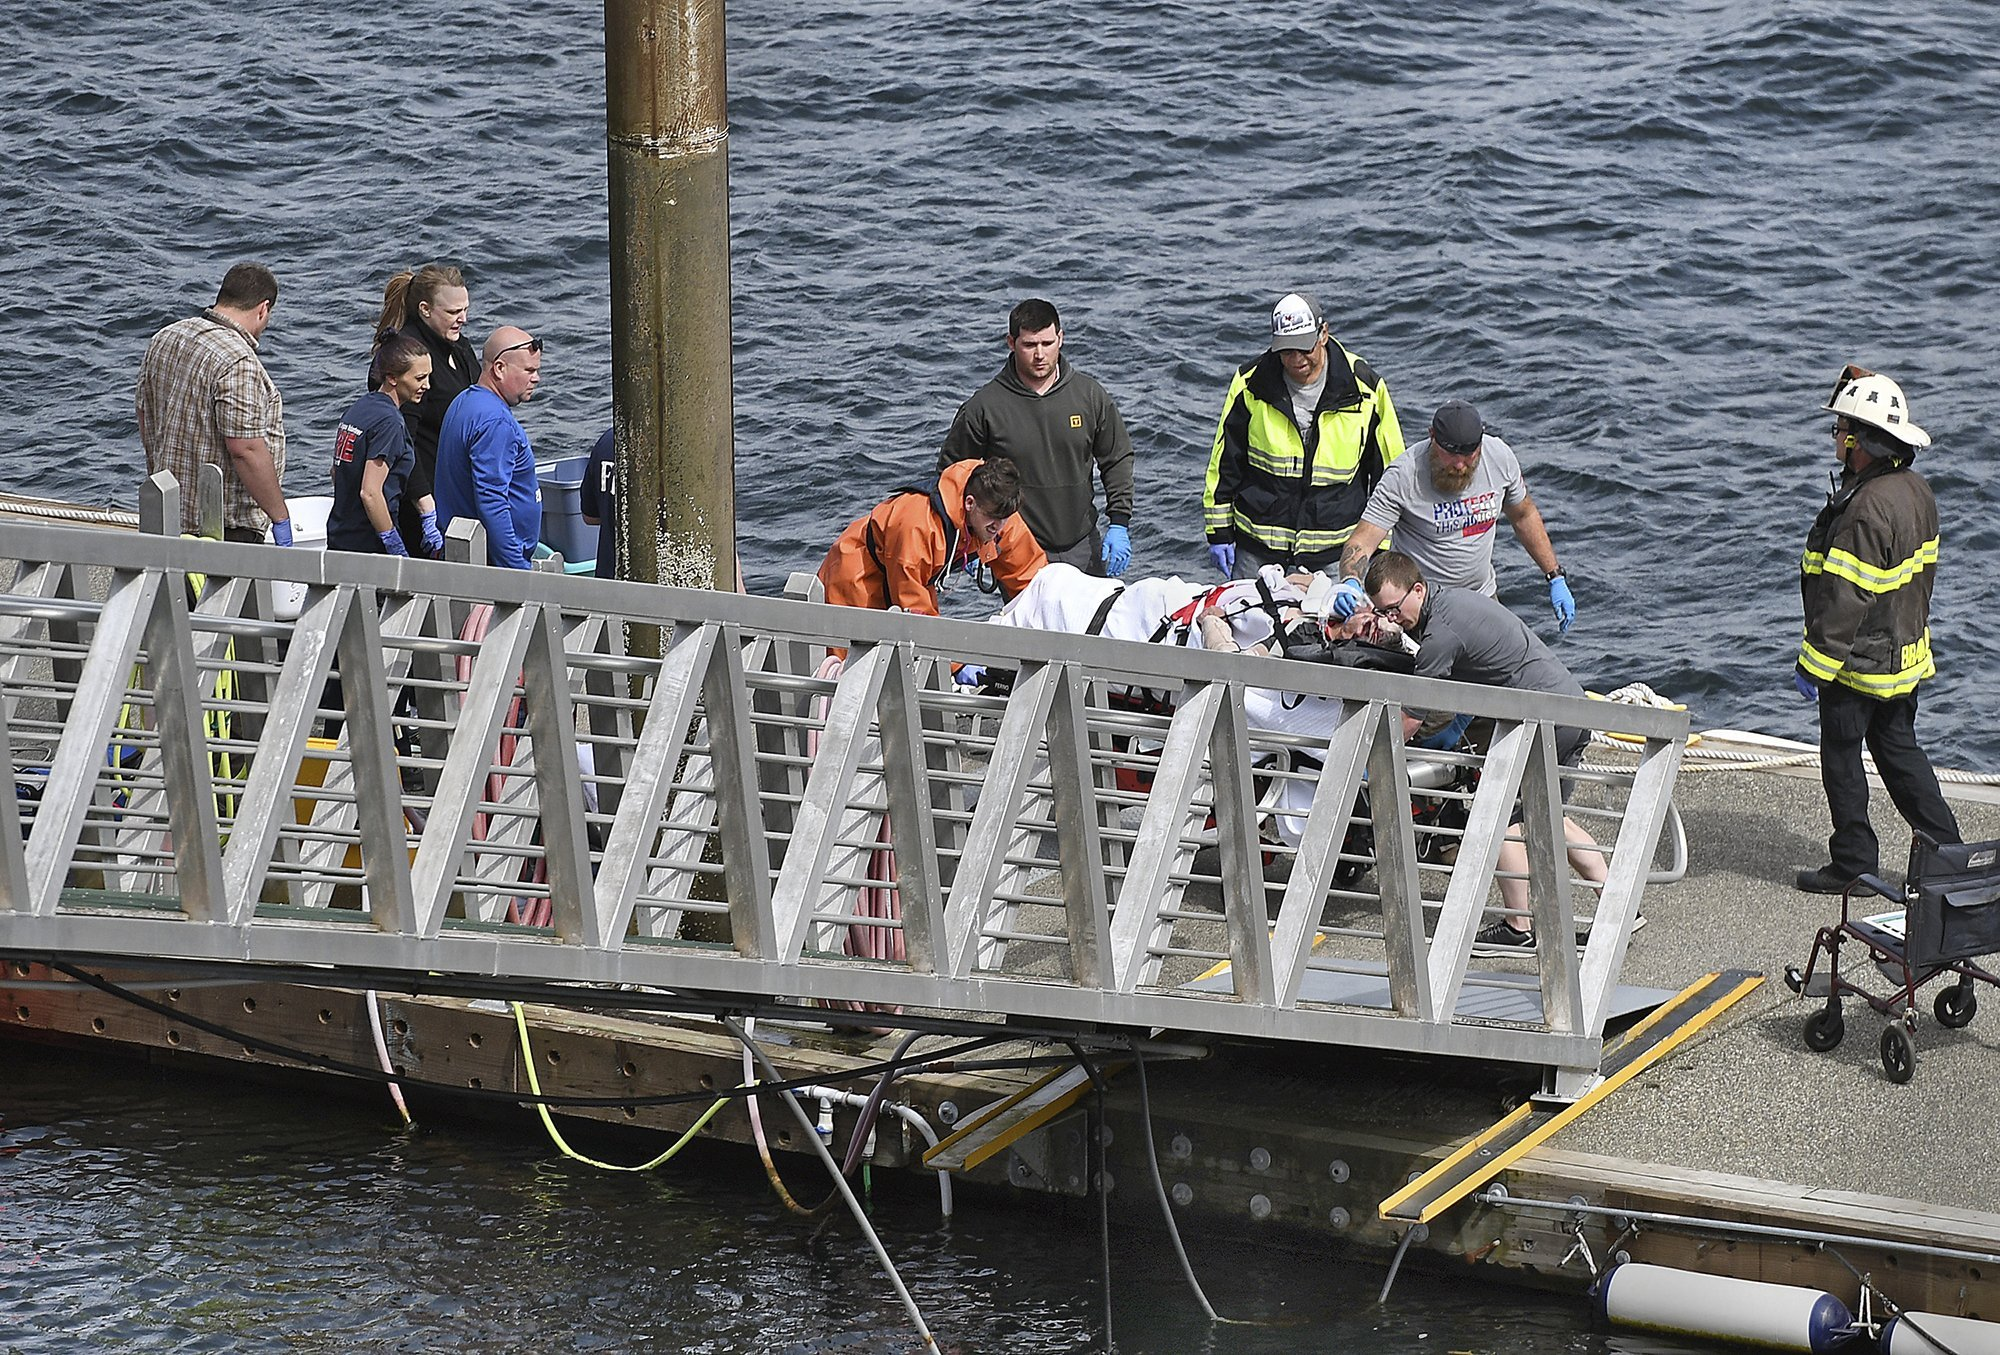 Emergency personnel transport an injured passenger to an ambulance in Ketchikan, Alaska, after two float planes collided in flight on May 13, 2019. (Credit: Dustin Safranek / AP via CNN)